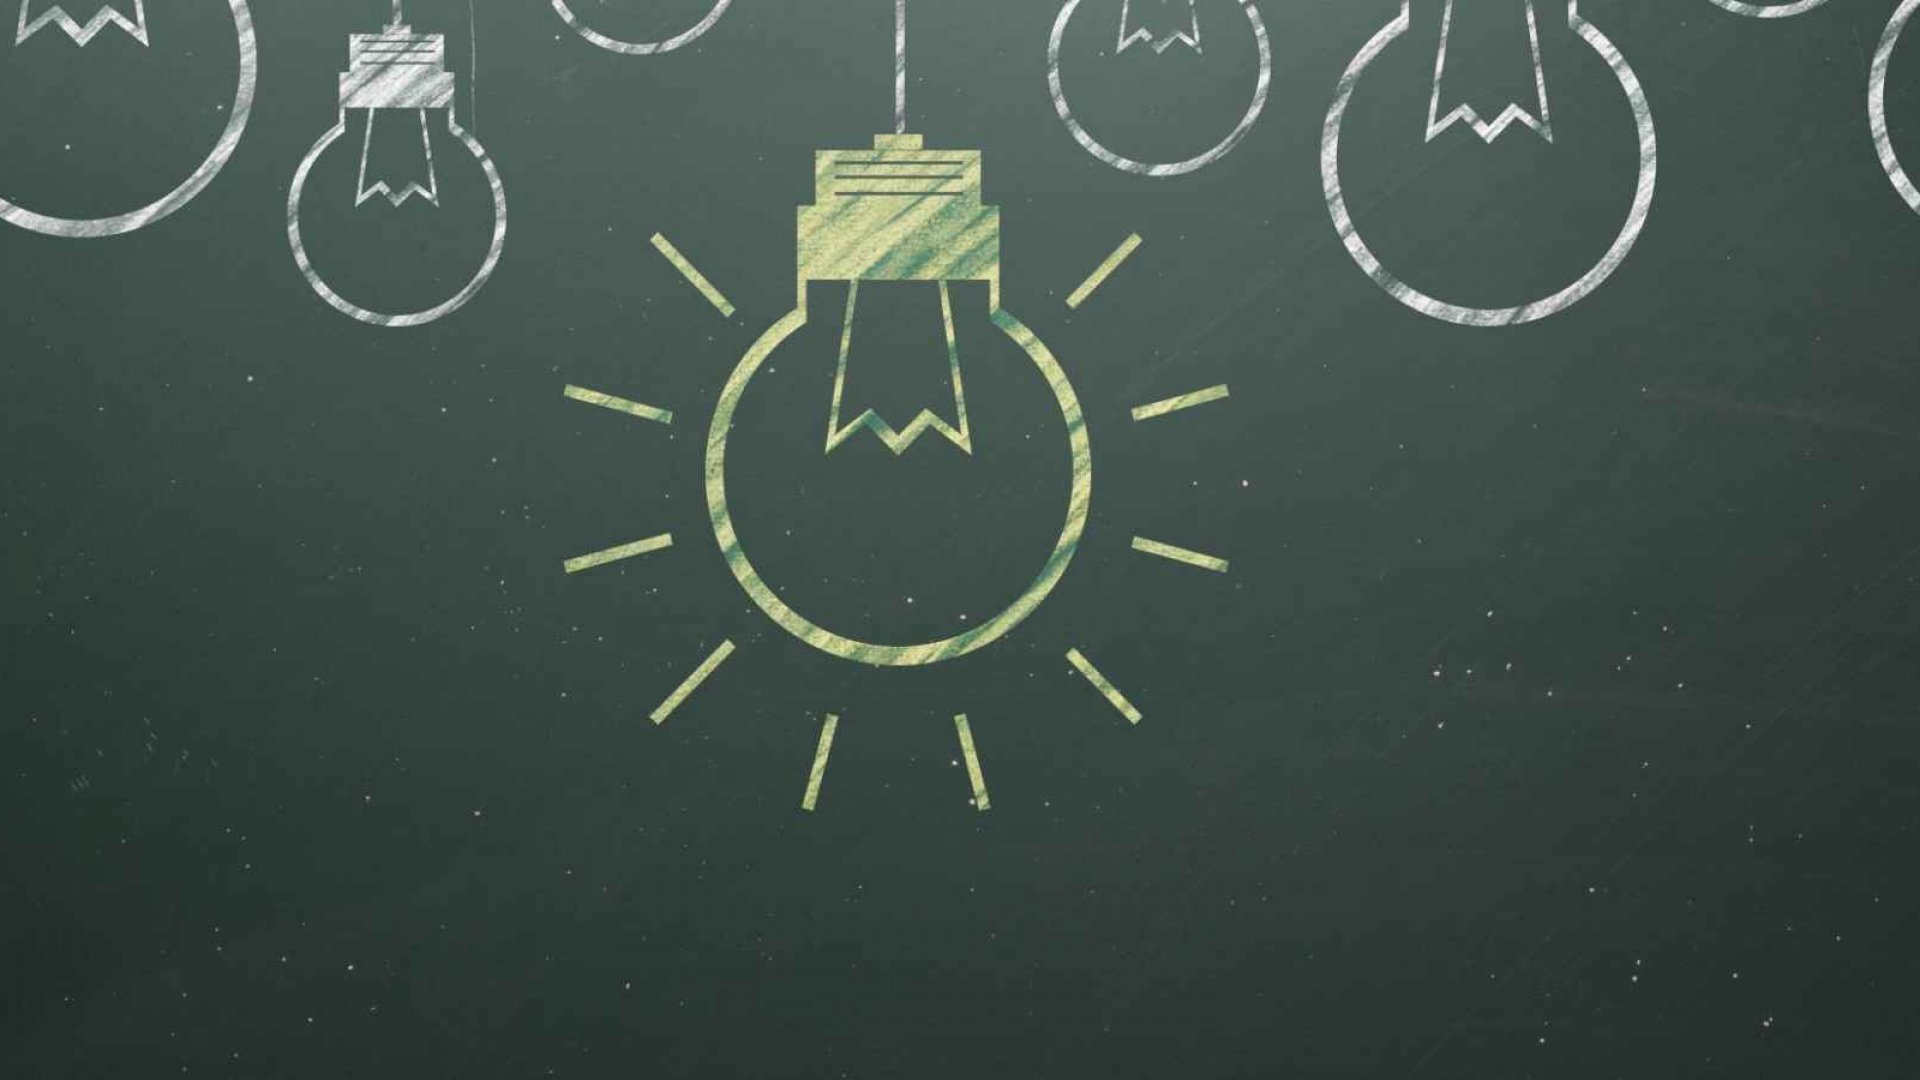 7 Ways To Re-energize and Reignite Creativity in Your Team